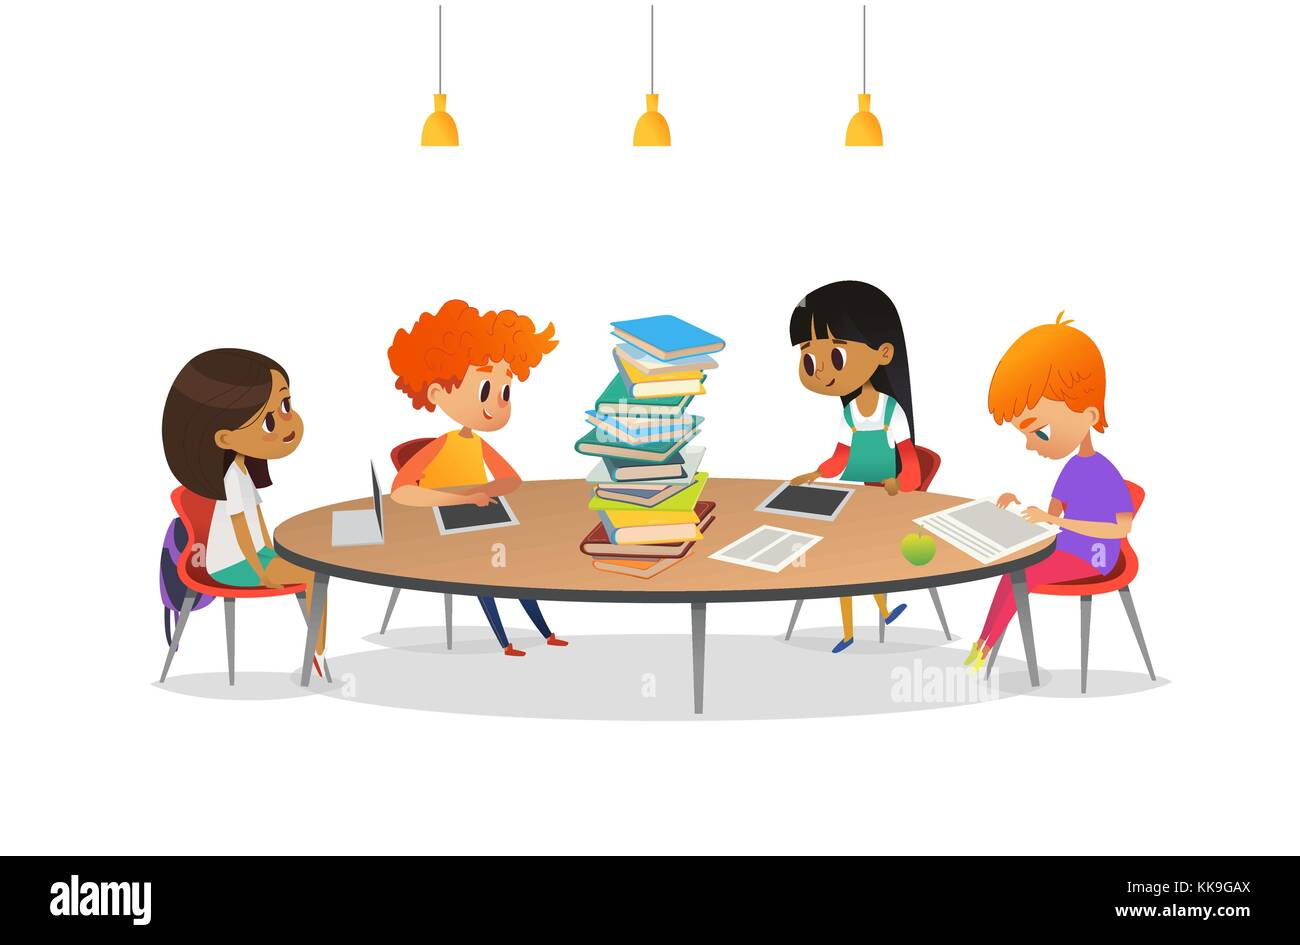 Group Children Sitting Round Table Stock Photos Amp Group